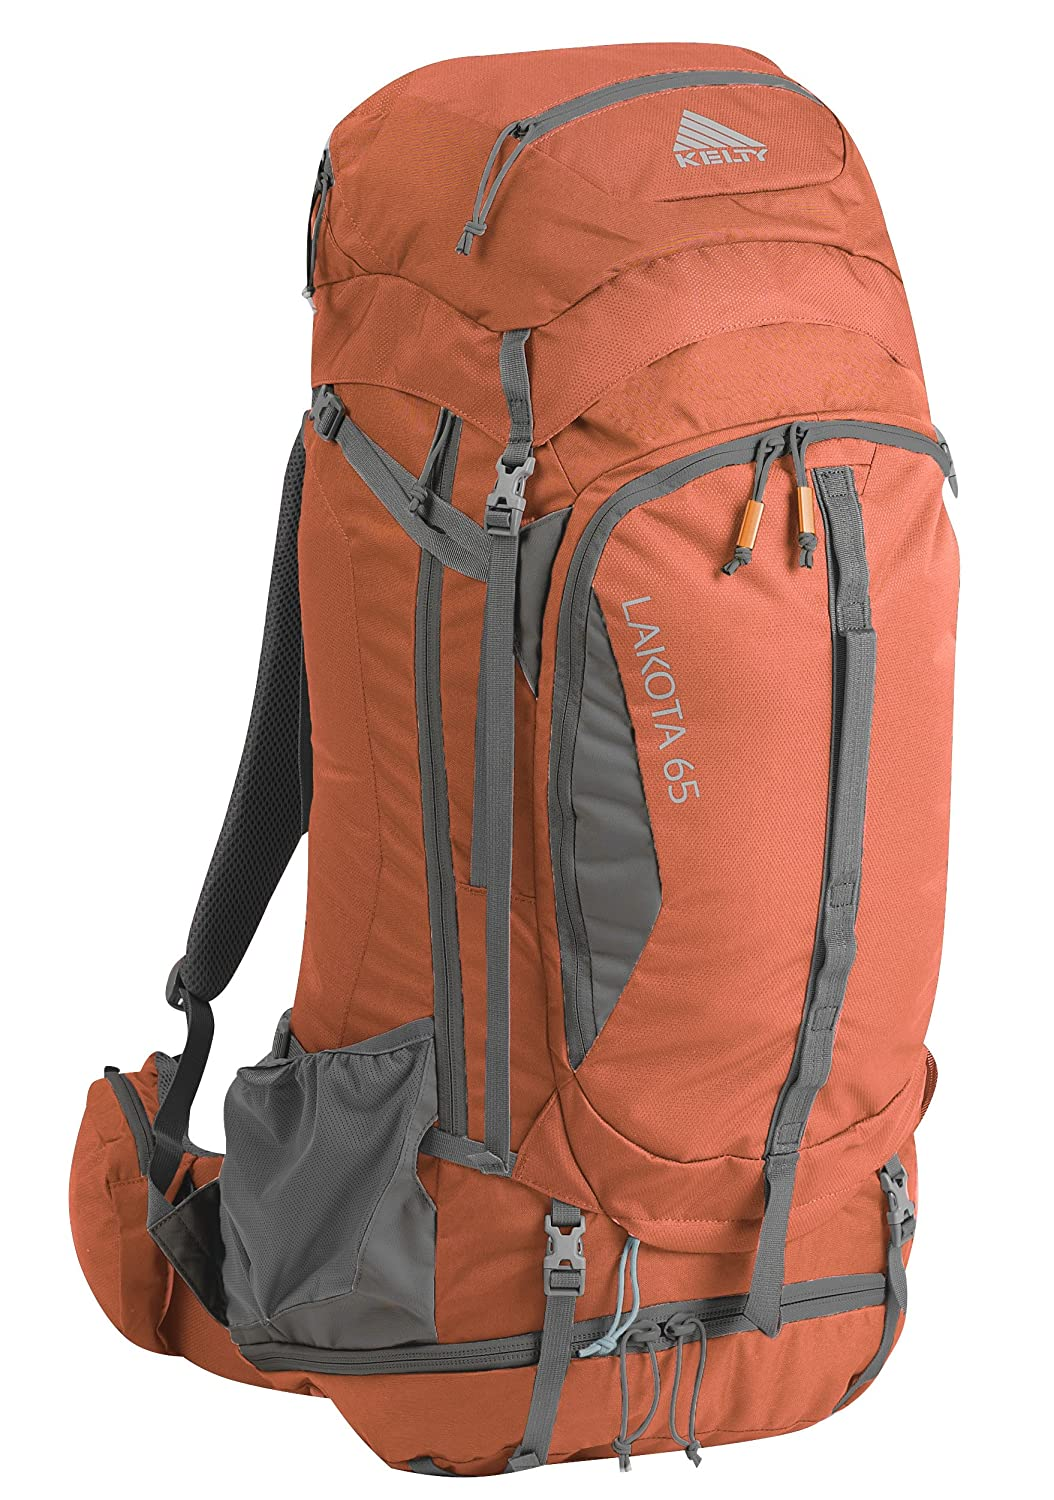 47fa10162ff5 kelty lakota 65 backpack - Kelty Child Carrier | Kelty Child Carrier